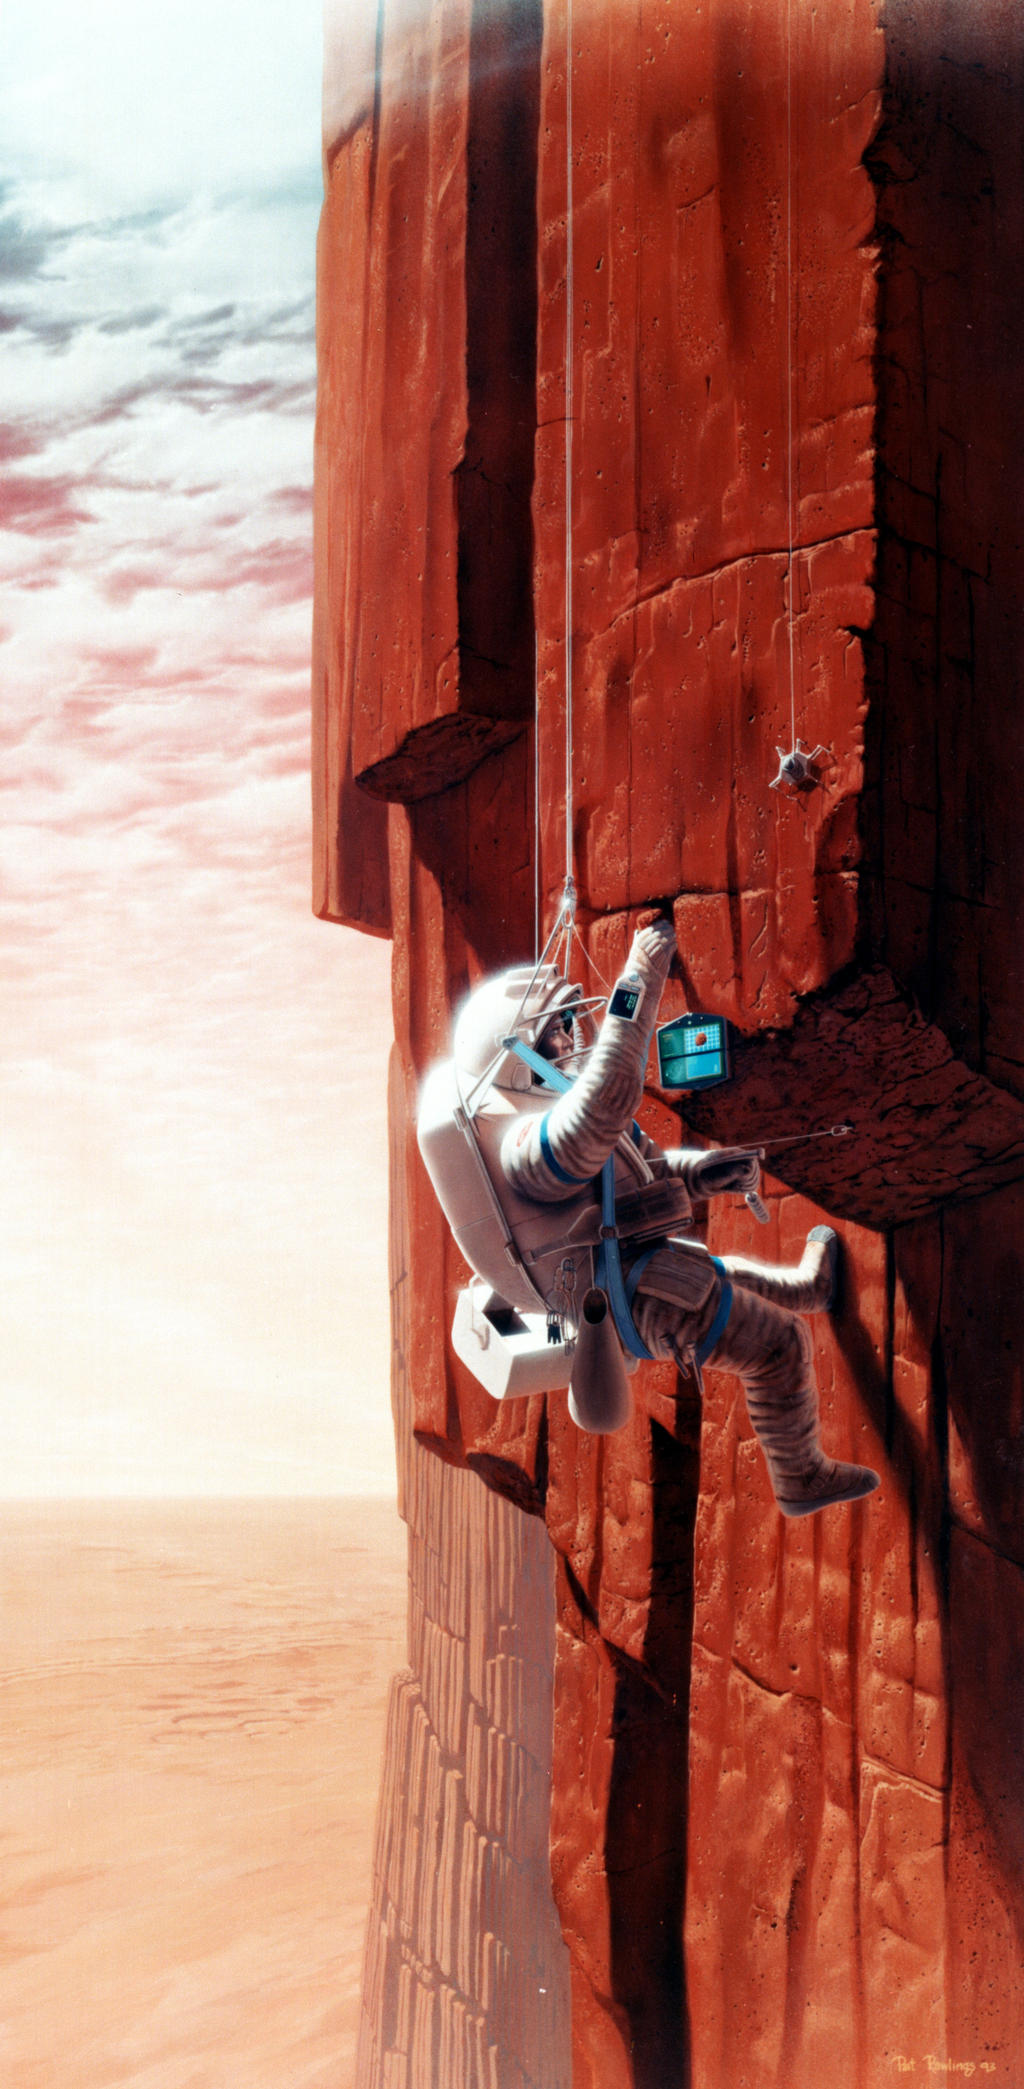 In this artist's concept, an astronaut collects Mars rock samples on the largest shield volcano in the solar system.